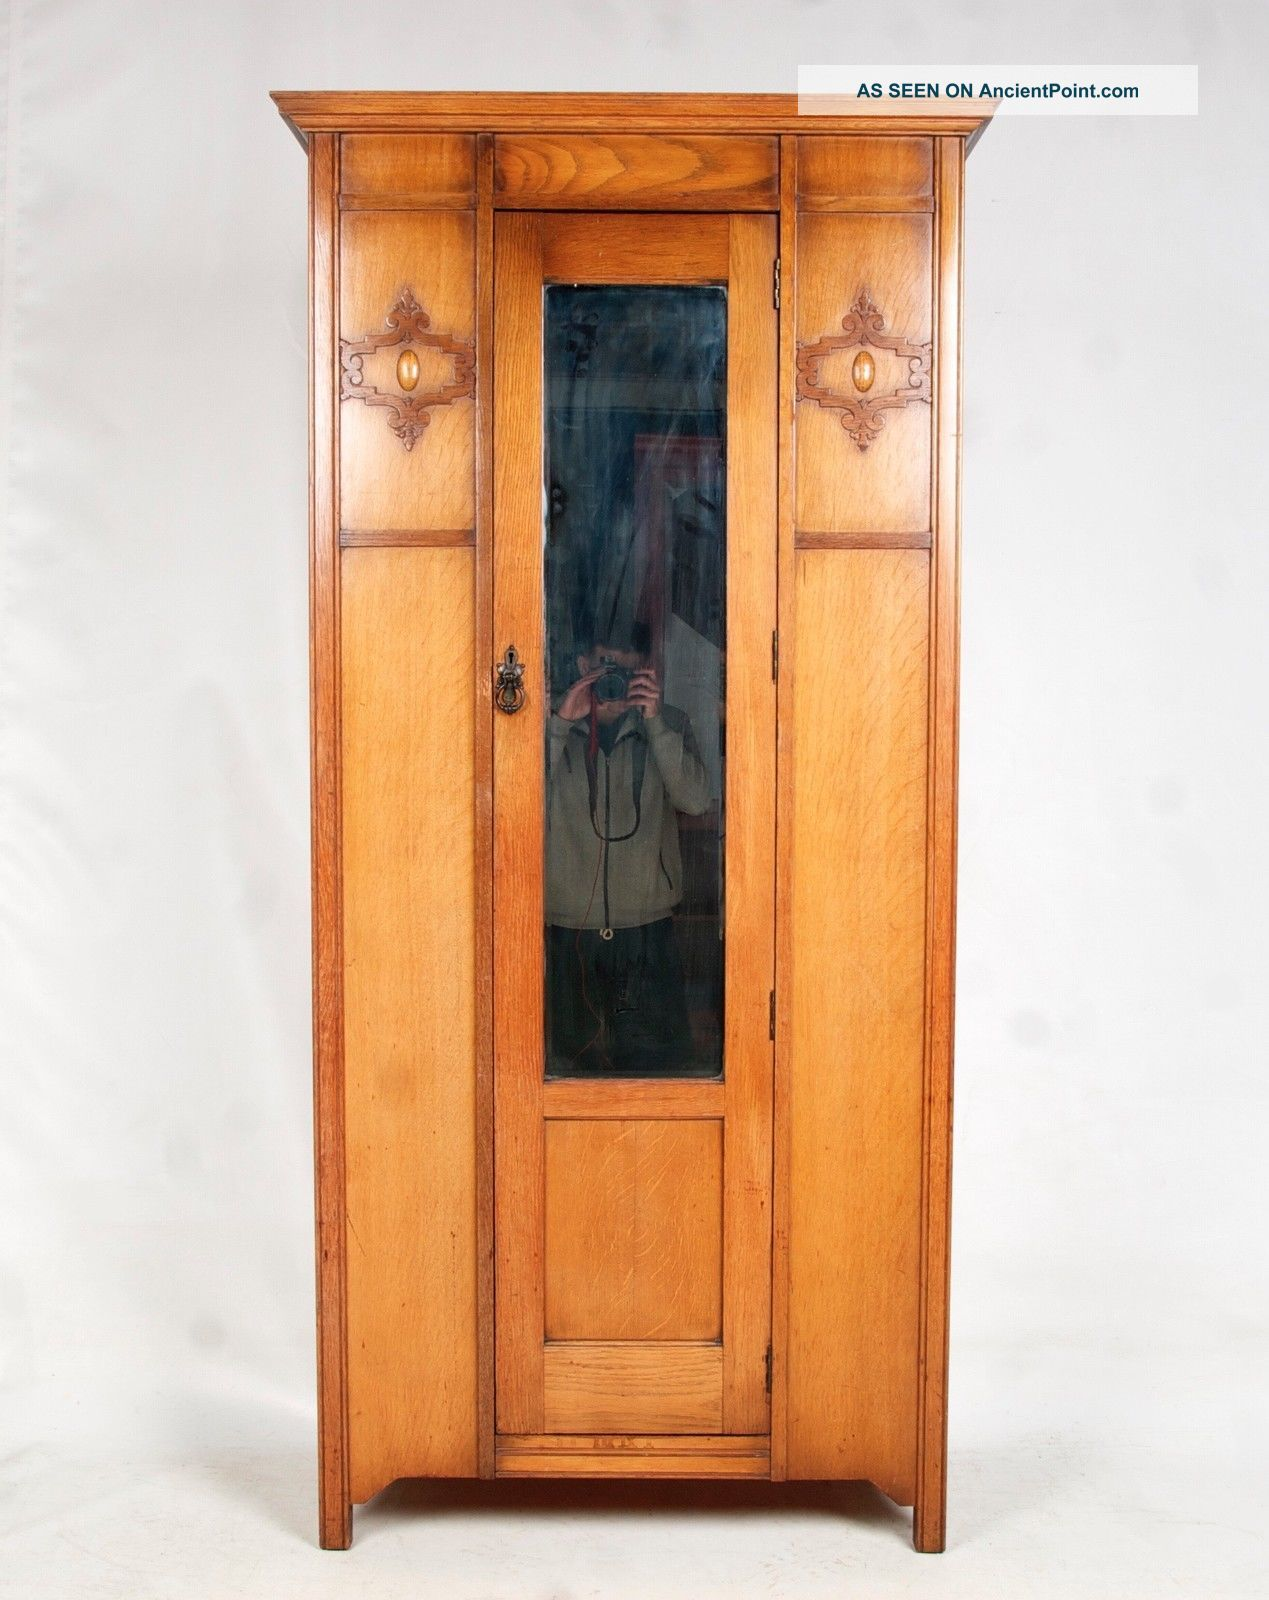 Antique Oak Wardrobe Edwardian Mirrored Slim Late 19th Century Arts & Crafts Edwardian (1901-1910) photo